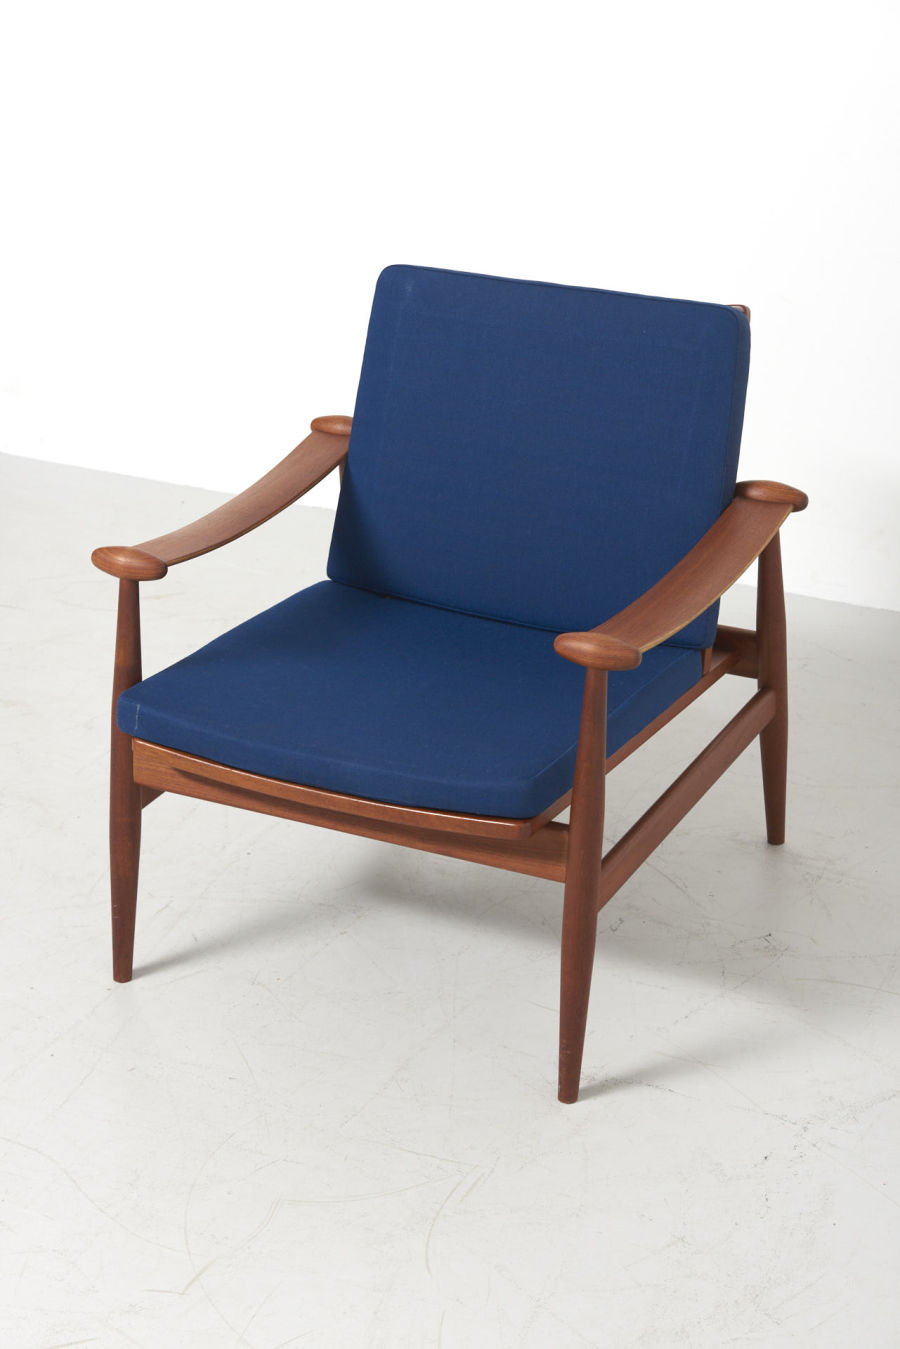 modestfurniture-vintage-2739-finn-juhl-spade-chair-france-and-son03